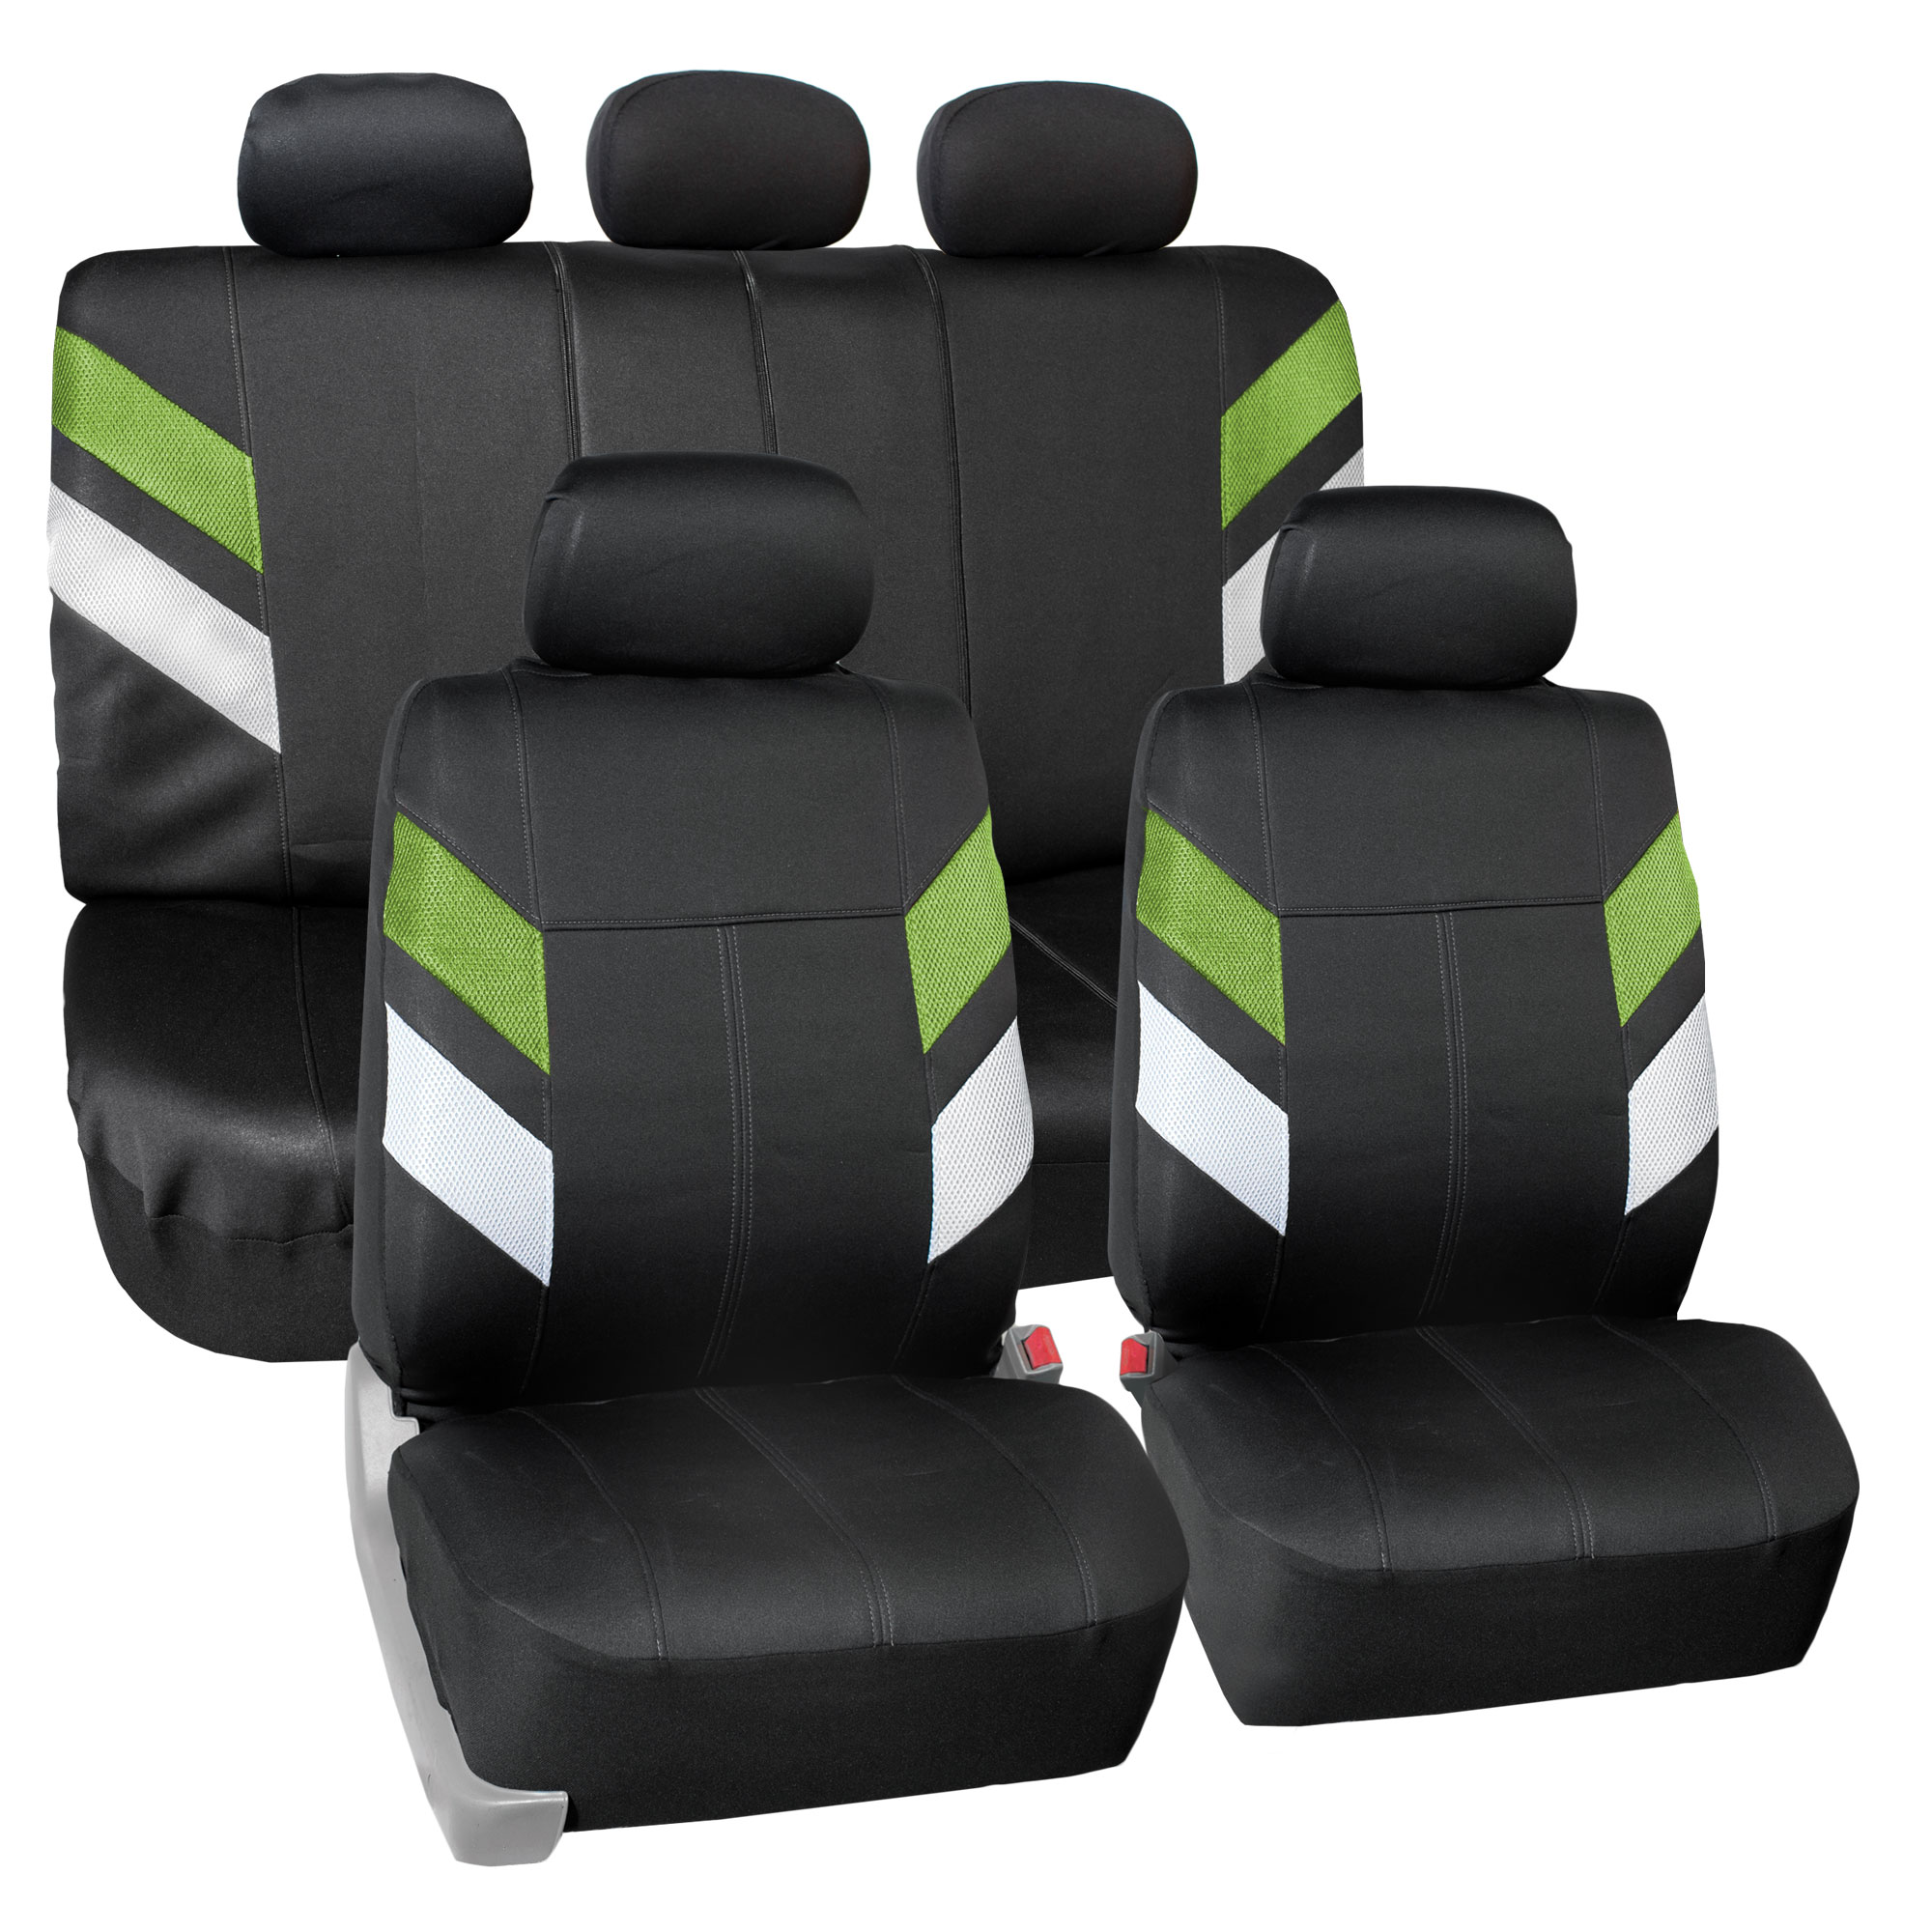 FH Group, Neoprene Car Seat Covers for Auto Car SUV Van Completerest Full Set 12 Colors